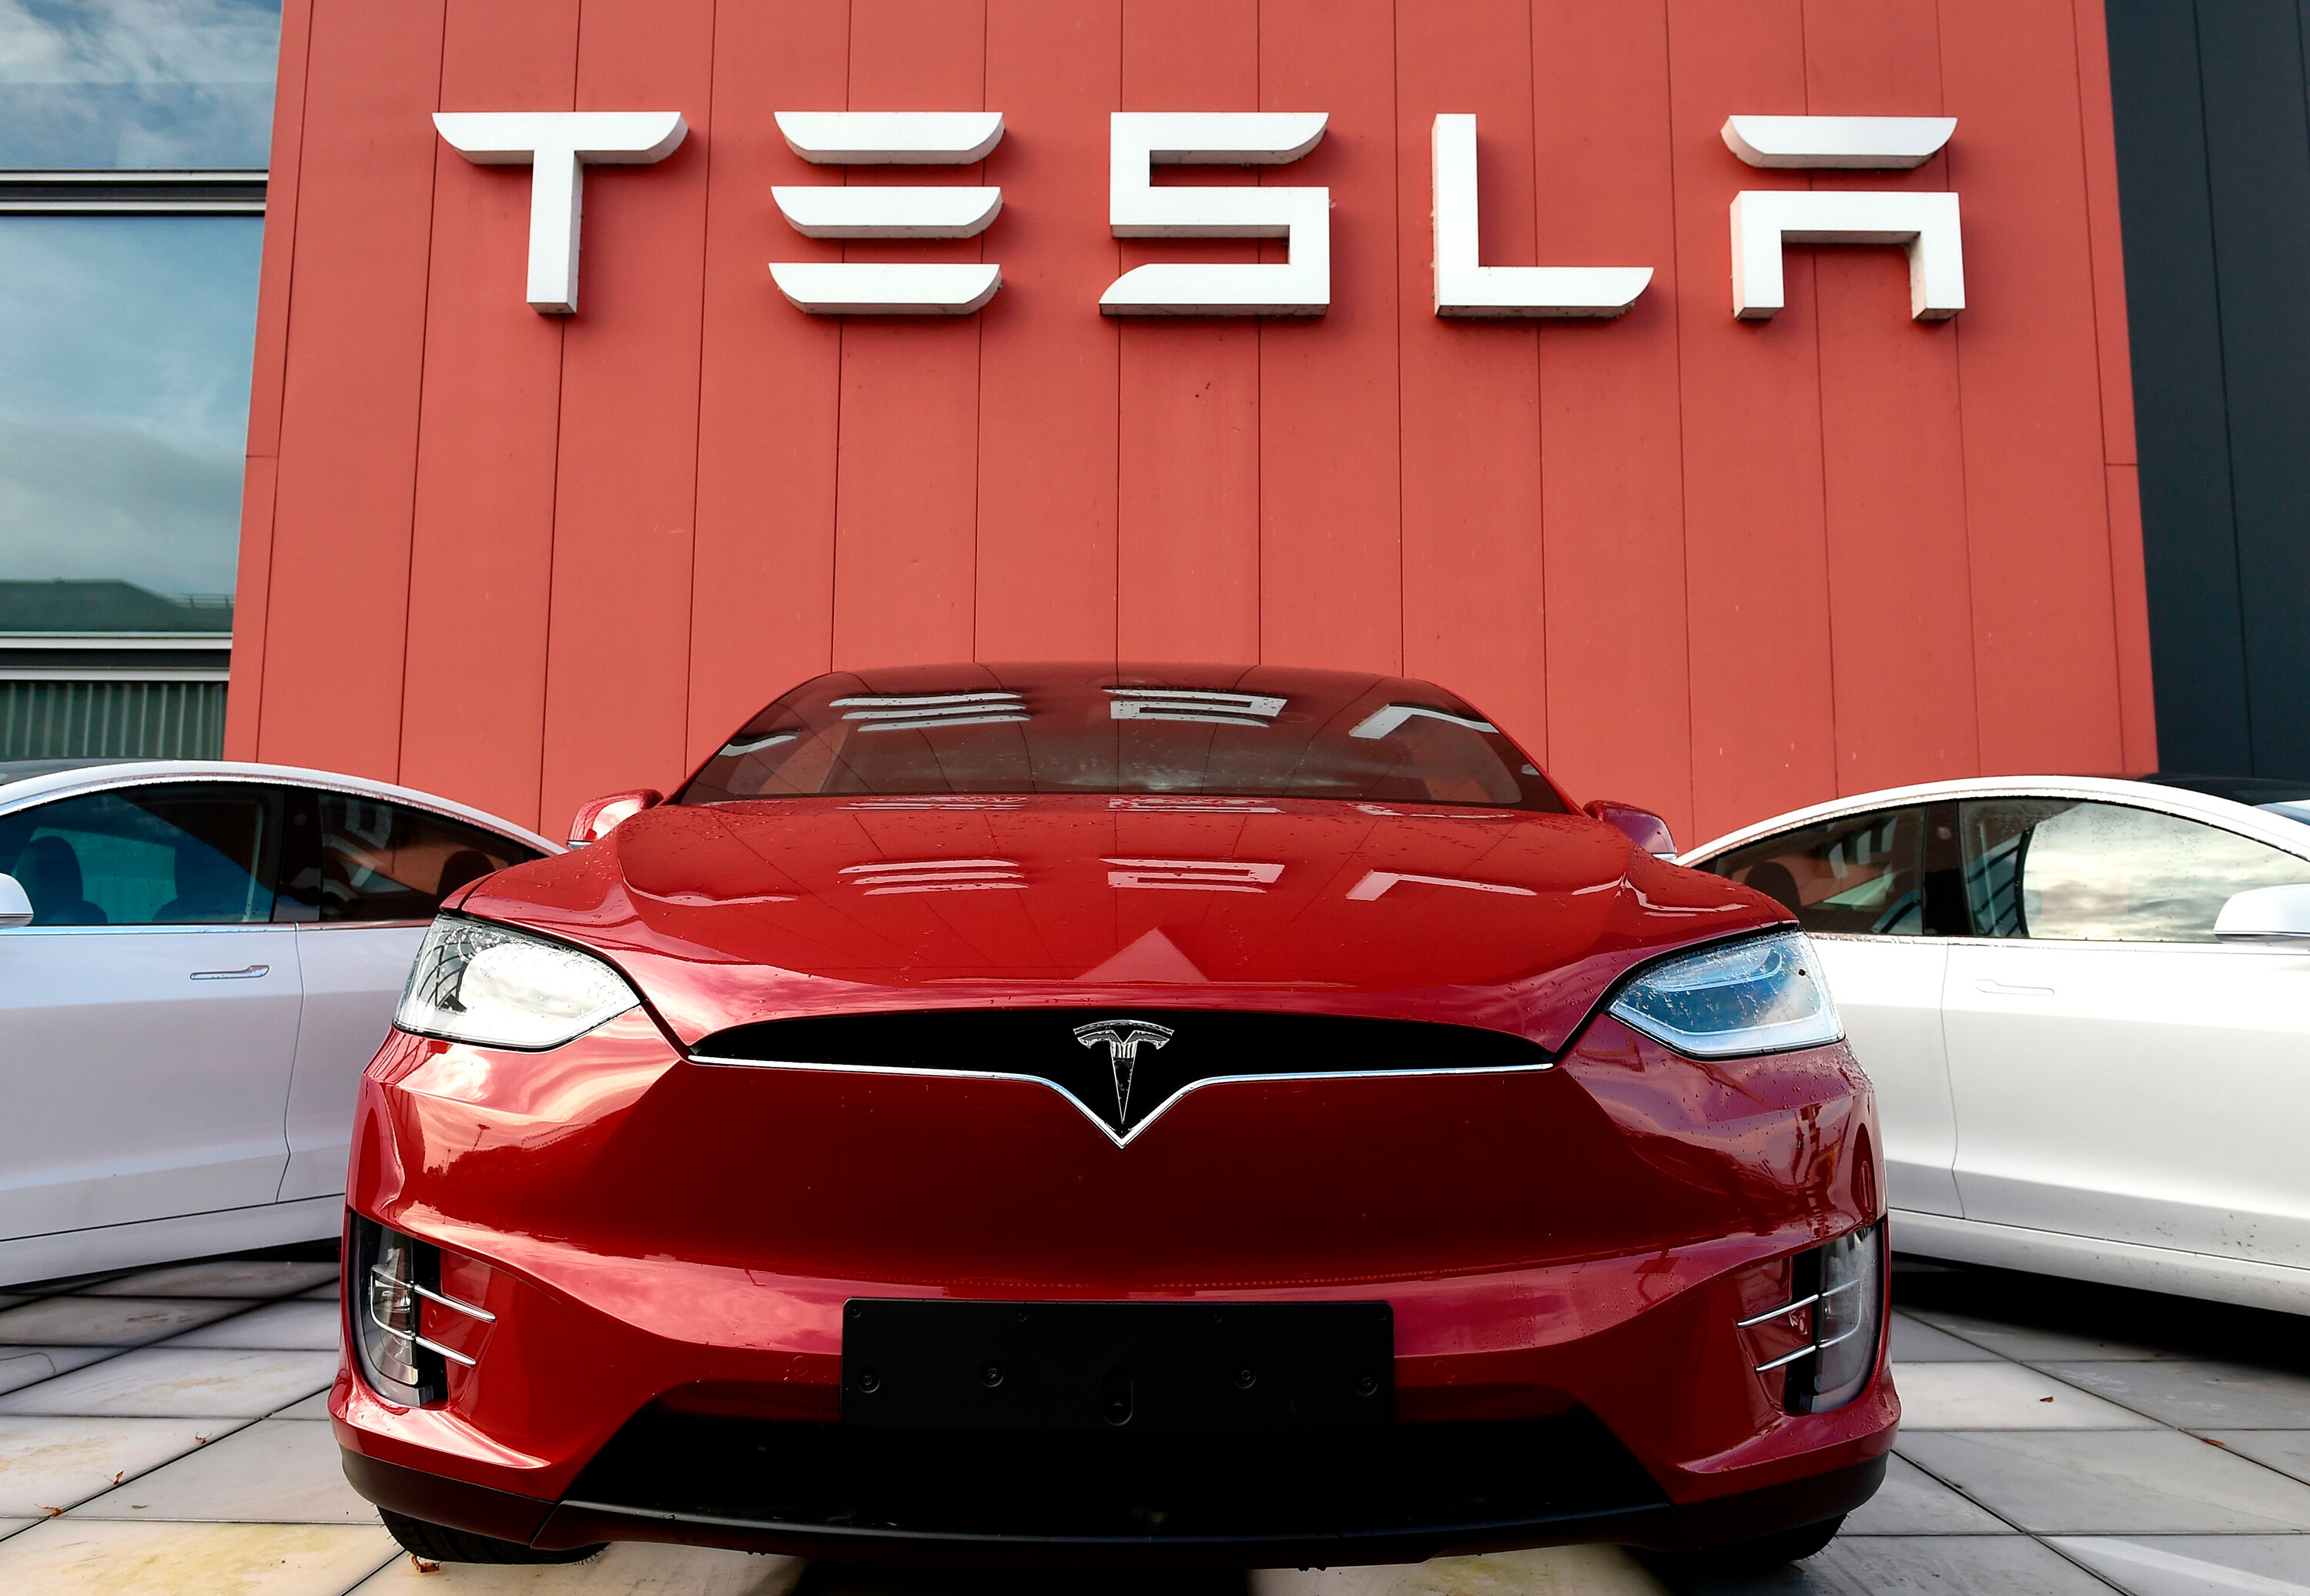 Tesla is now worth more than $1 trillion